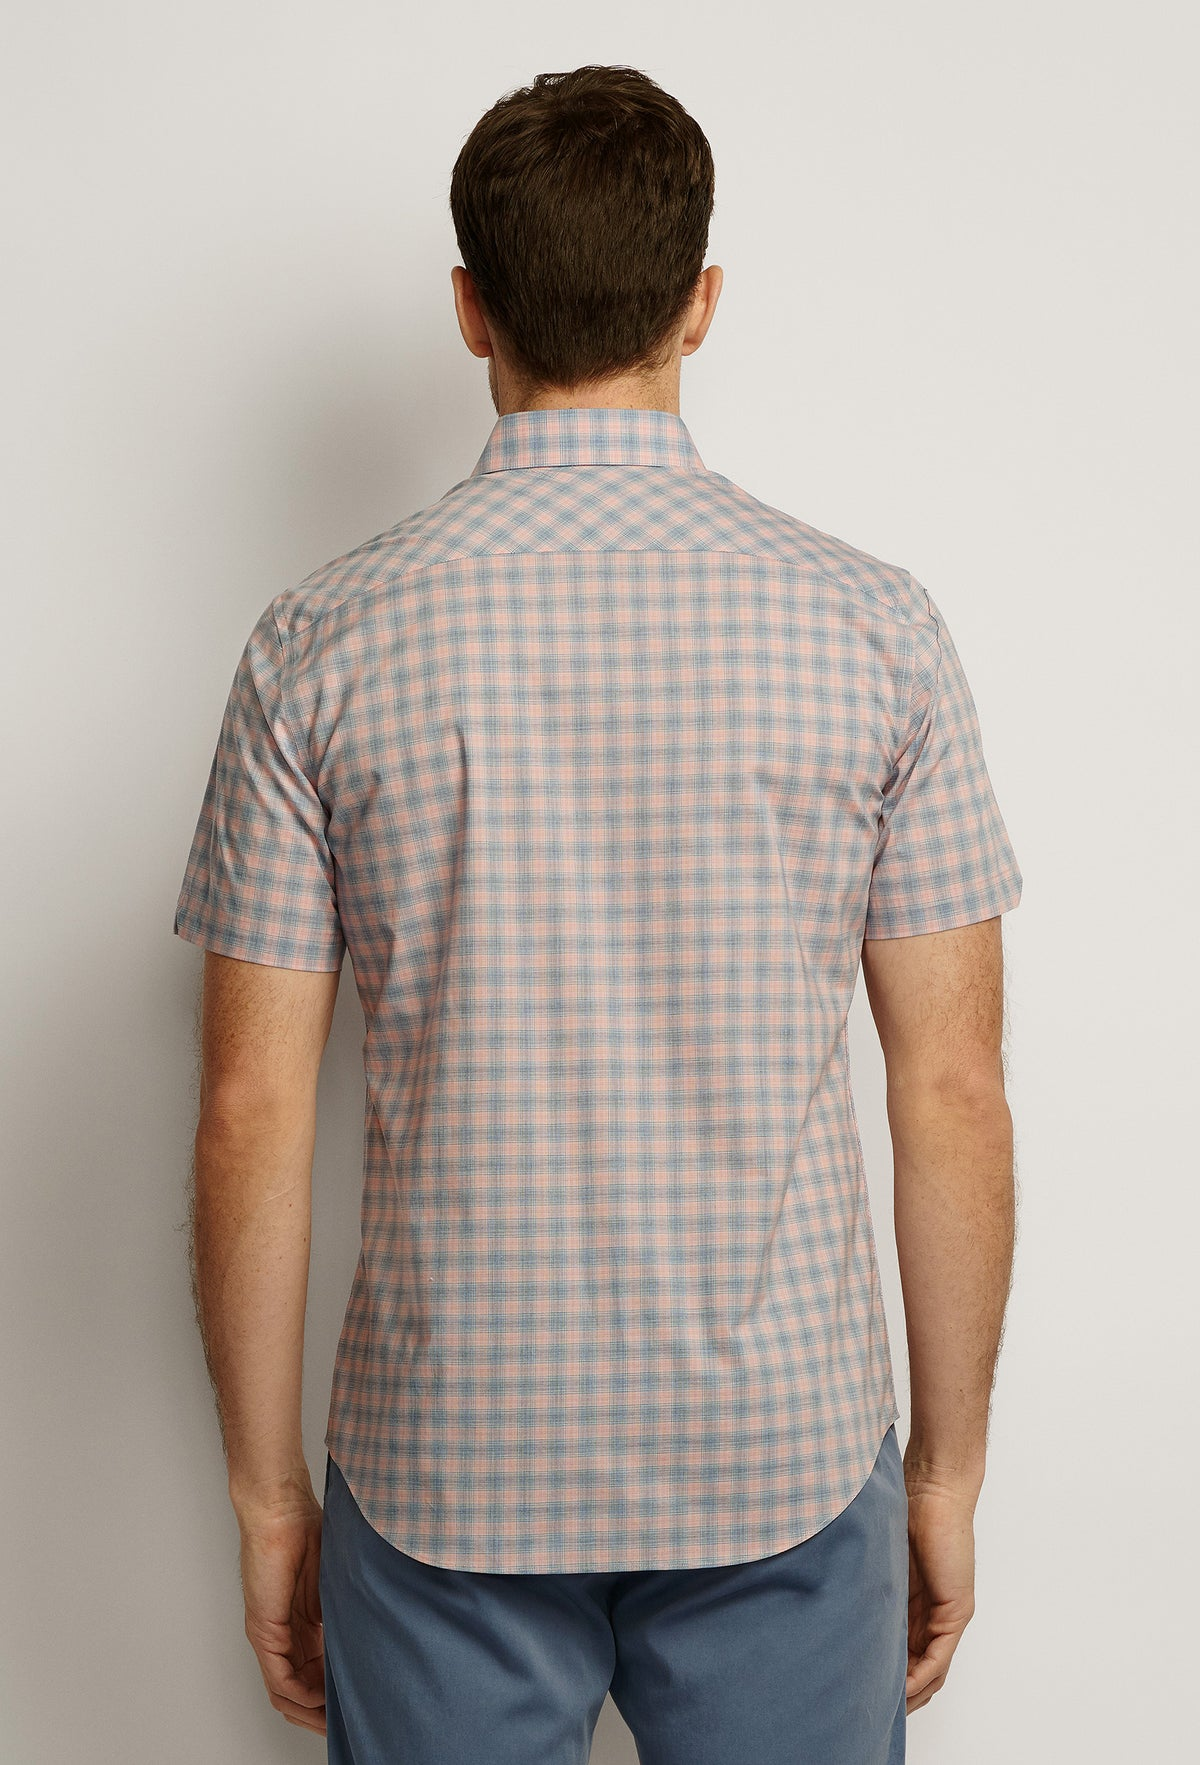 ZACHARY-PRELL-Koldabtsov-ShirtsModern-Menswear-New-Dress-Code